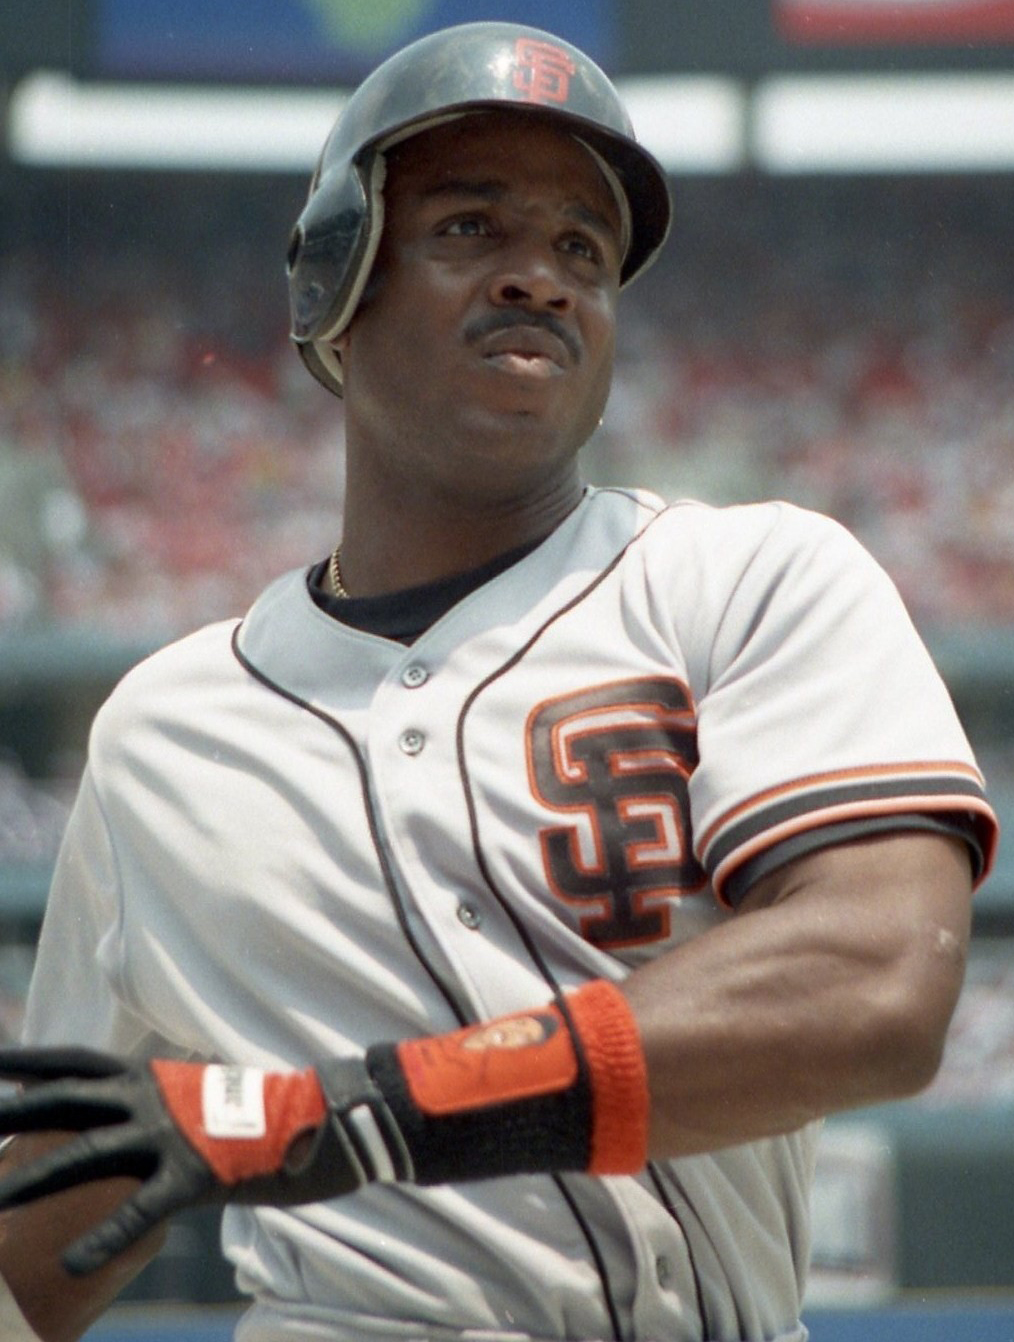 Barry Bonds is one of the Sons of Legends in Sports who has gone on to achieve big things